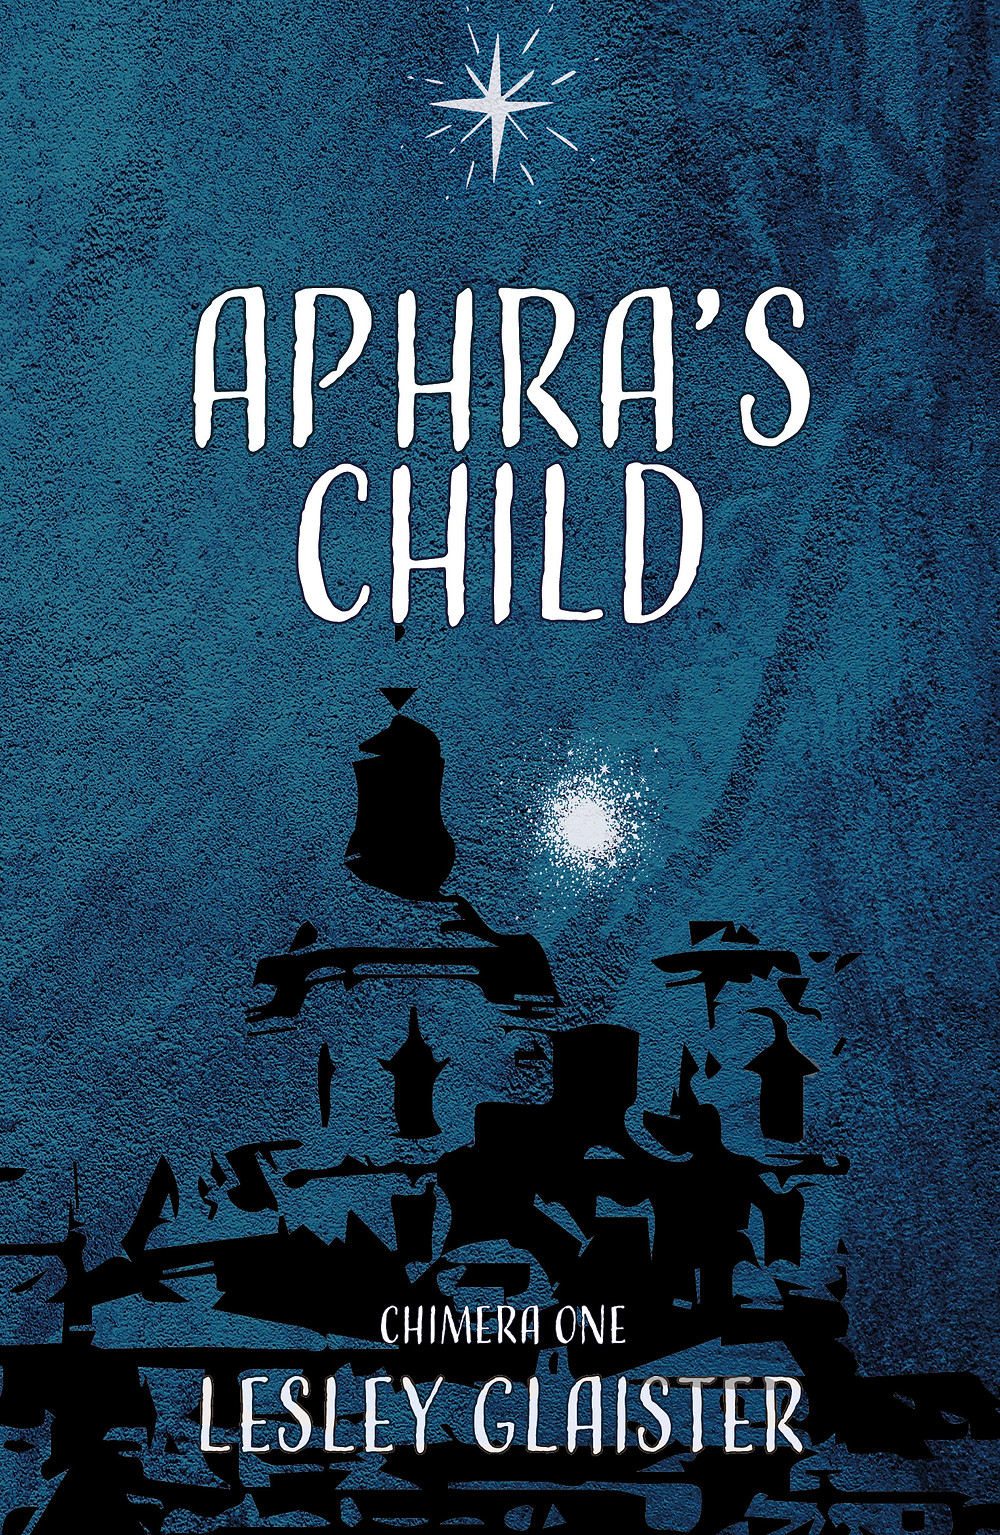 Cover of 'Aphra's Child' (blue with a silver star and a black line drawing of a city)